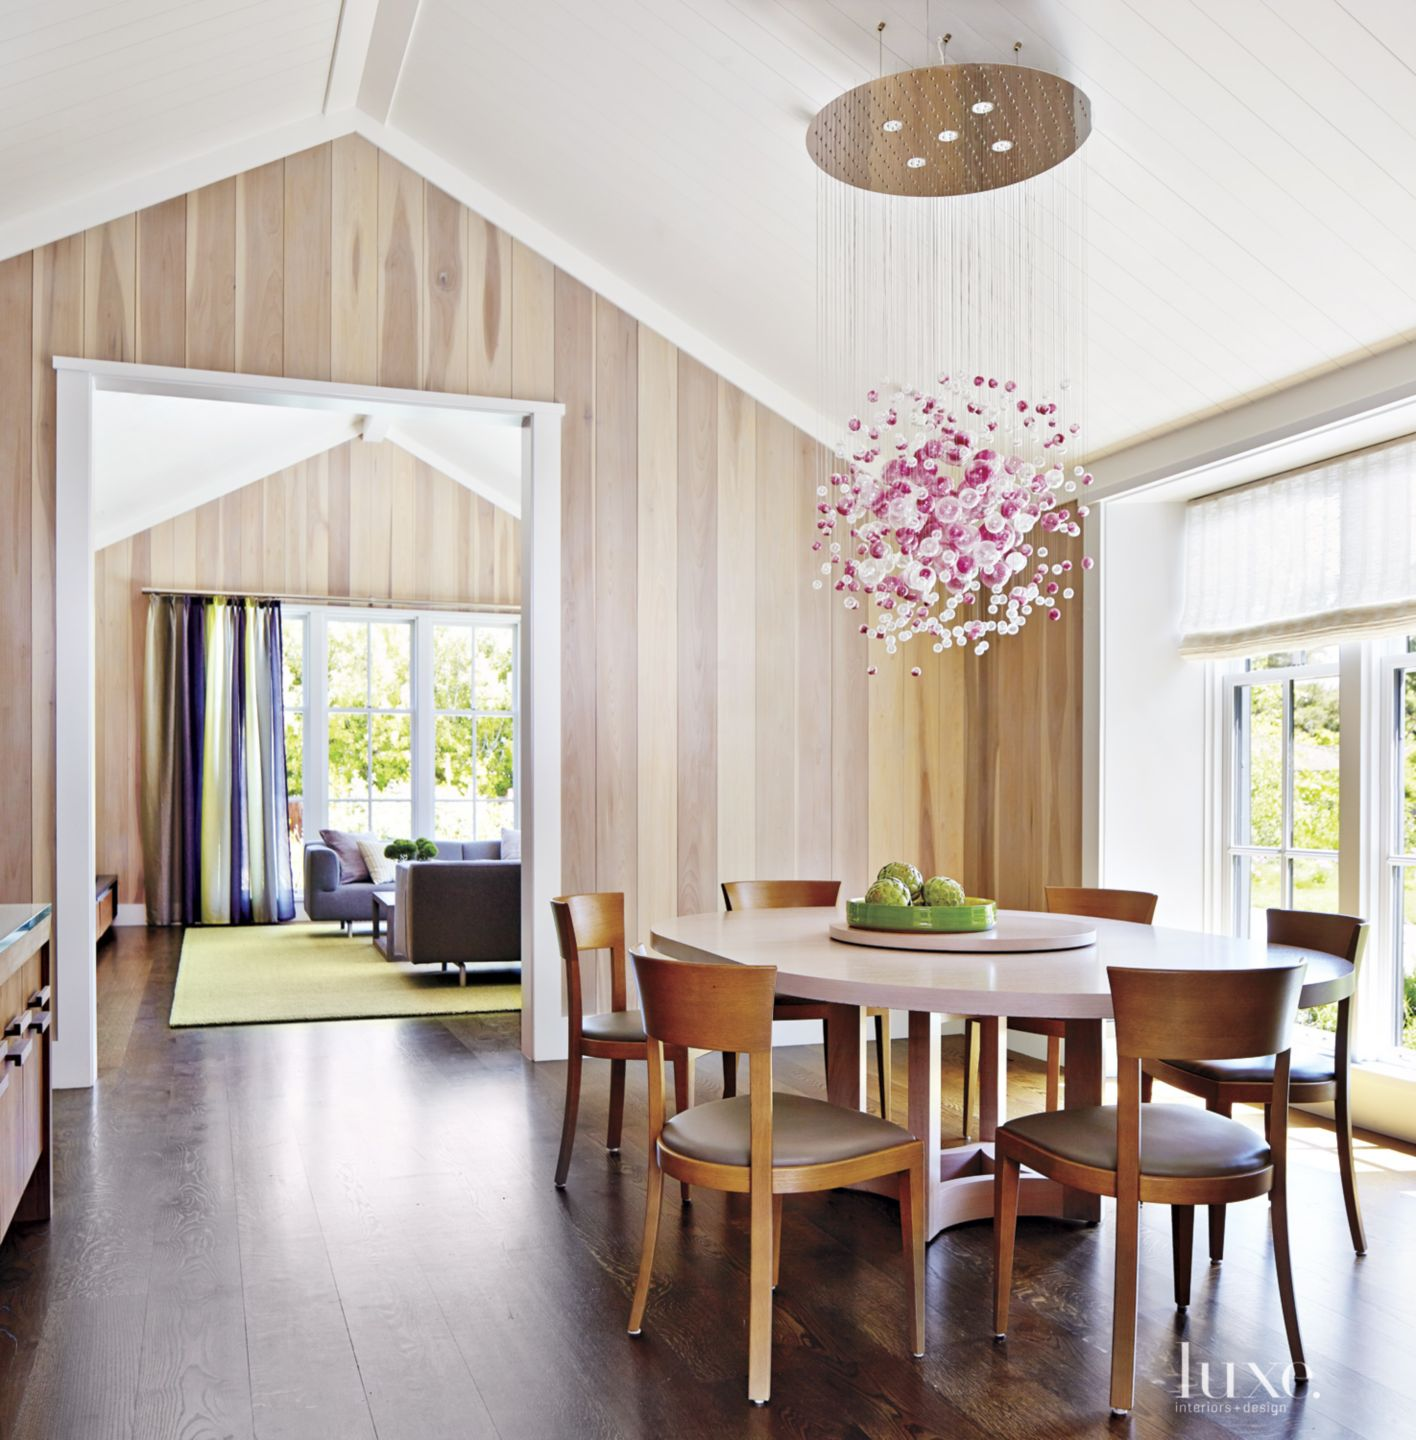 Contemporary Neutral Breakfast Area with White Oak Chairs